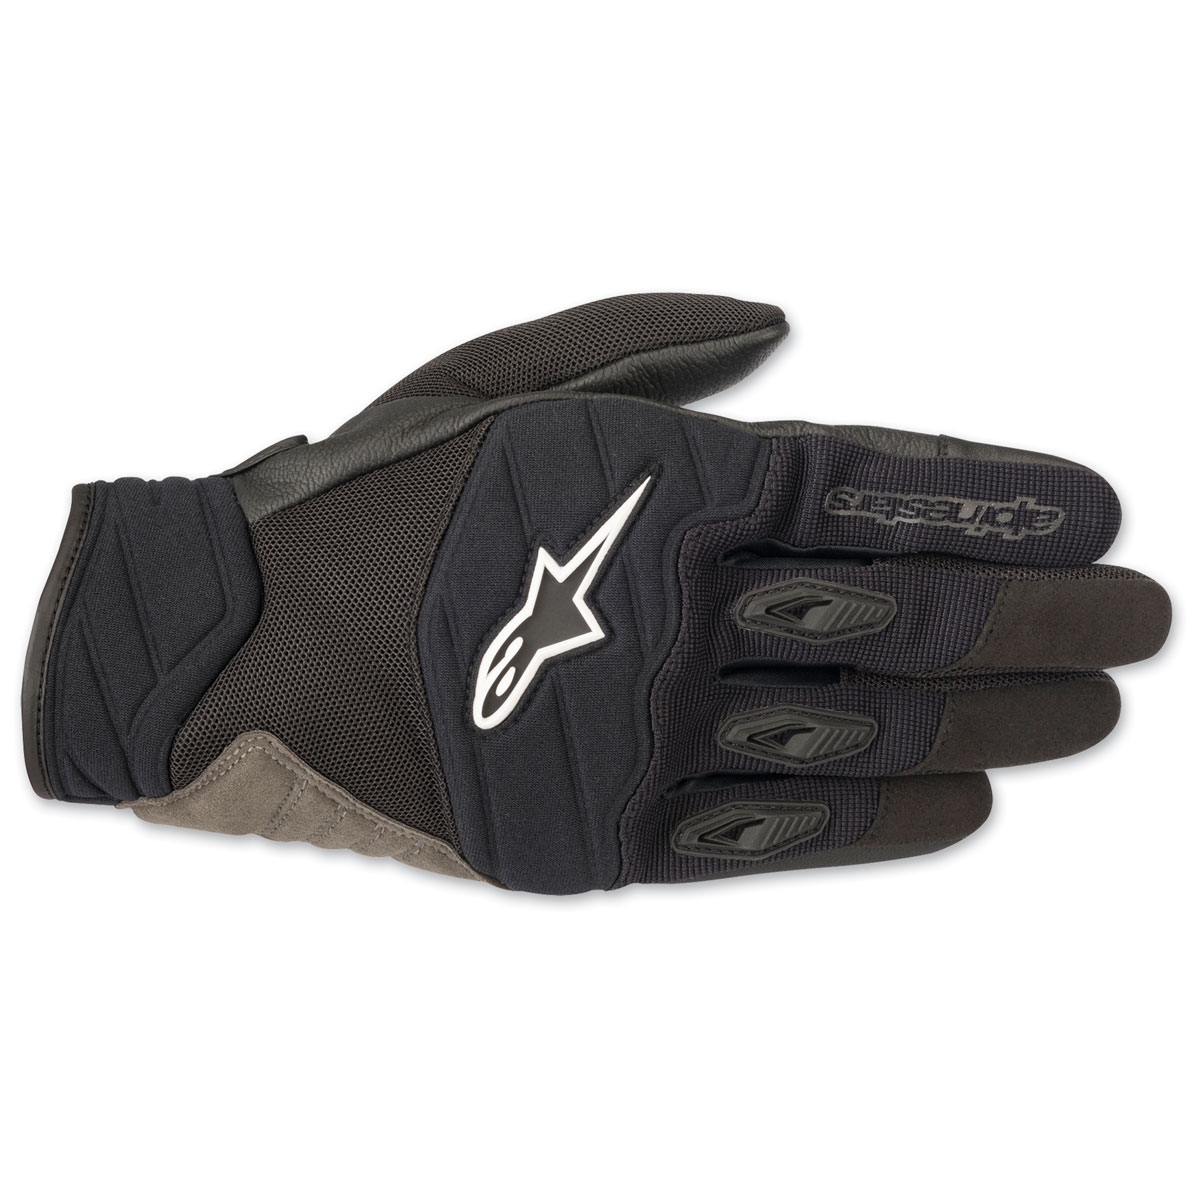 Alpinestars Men's Shore Black Gloves